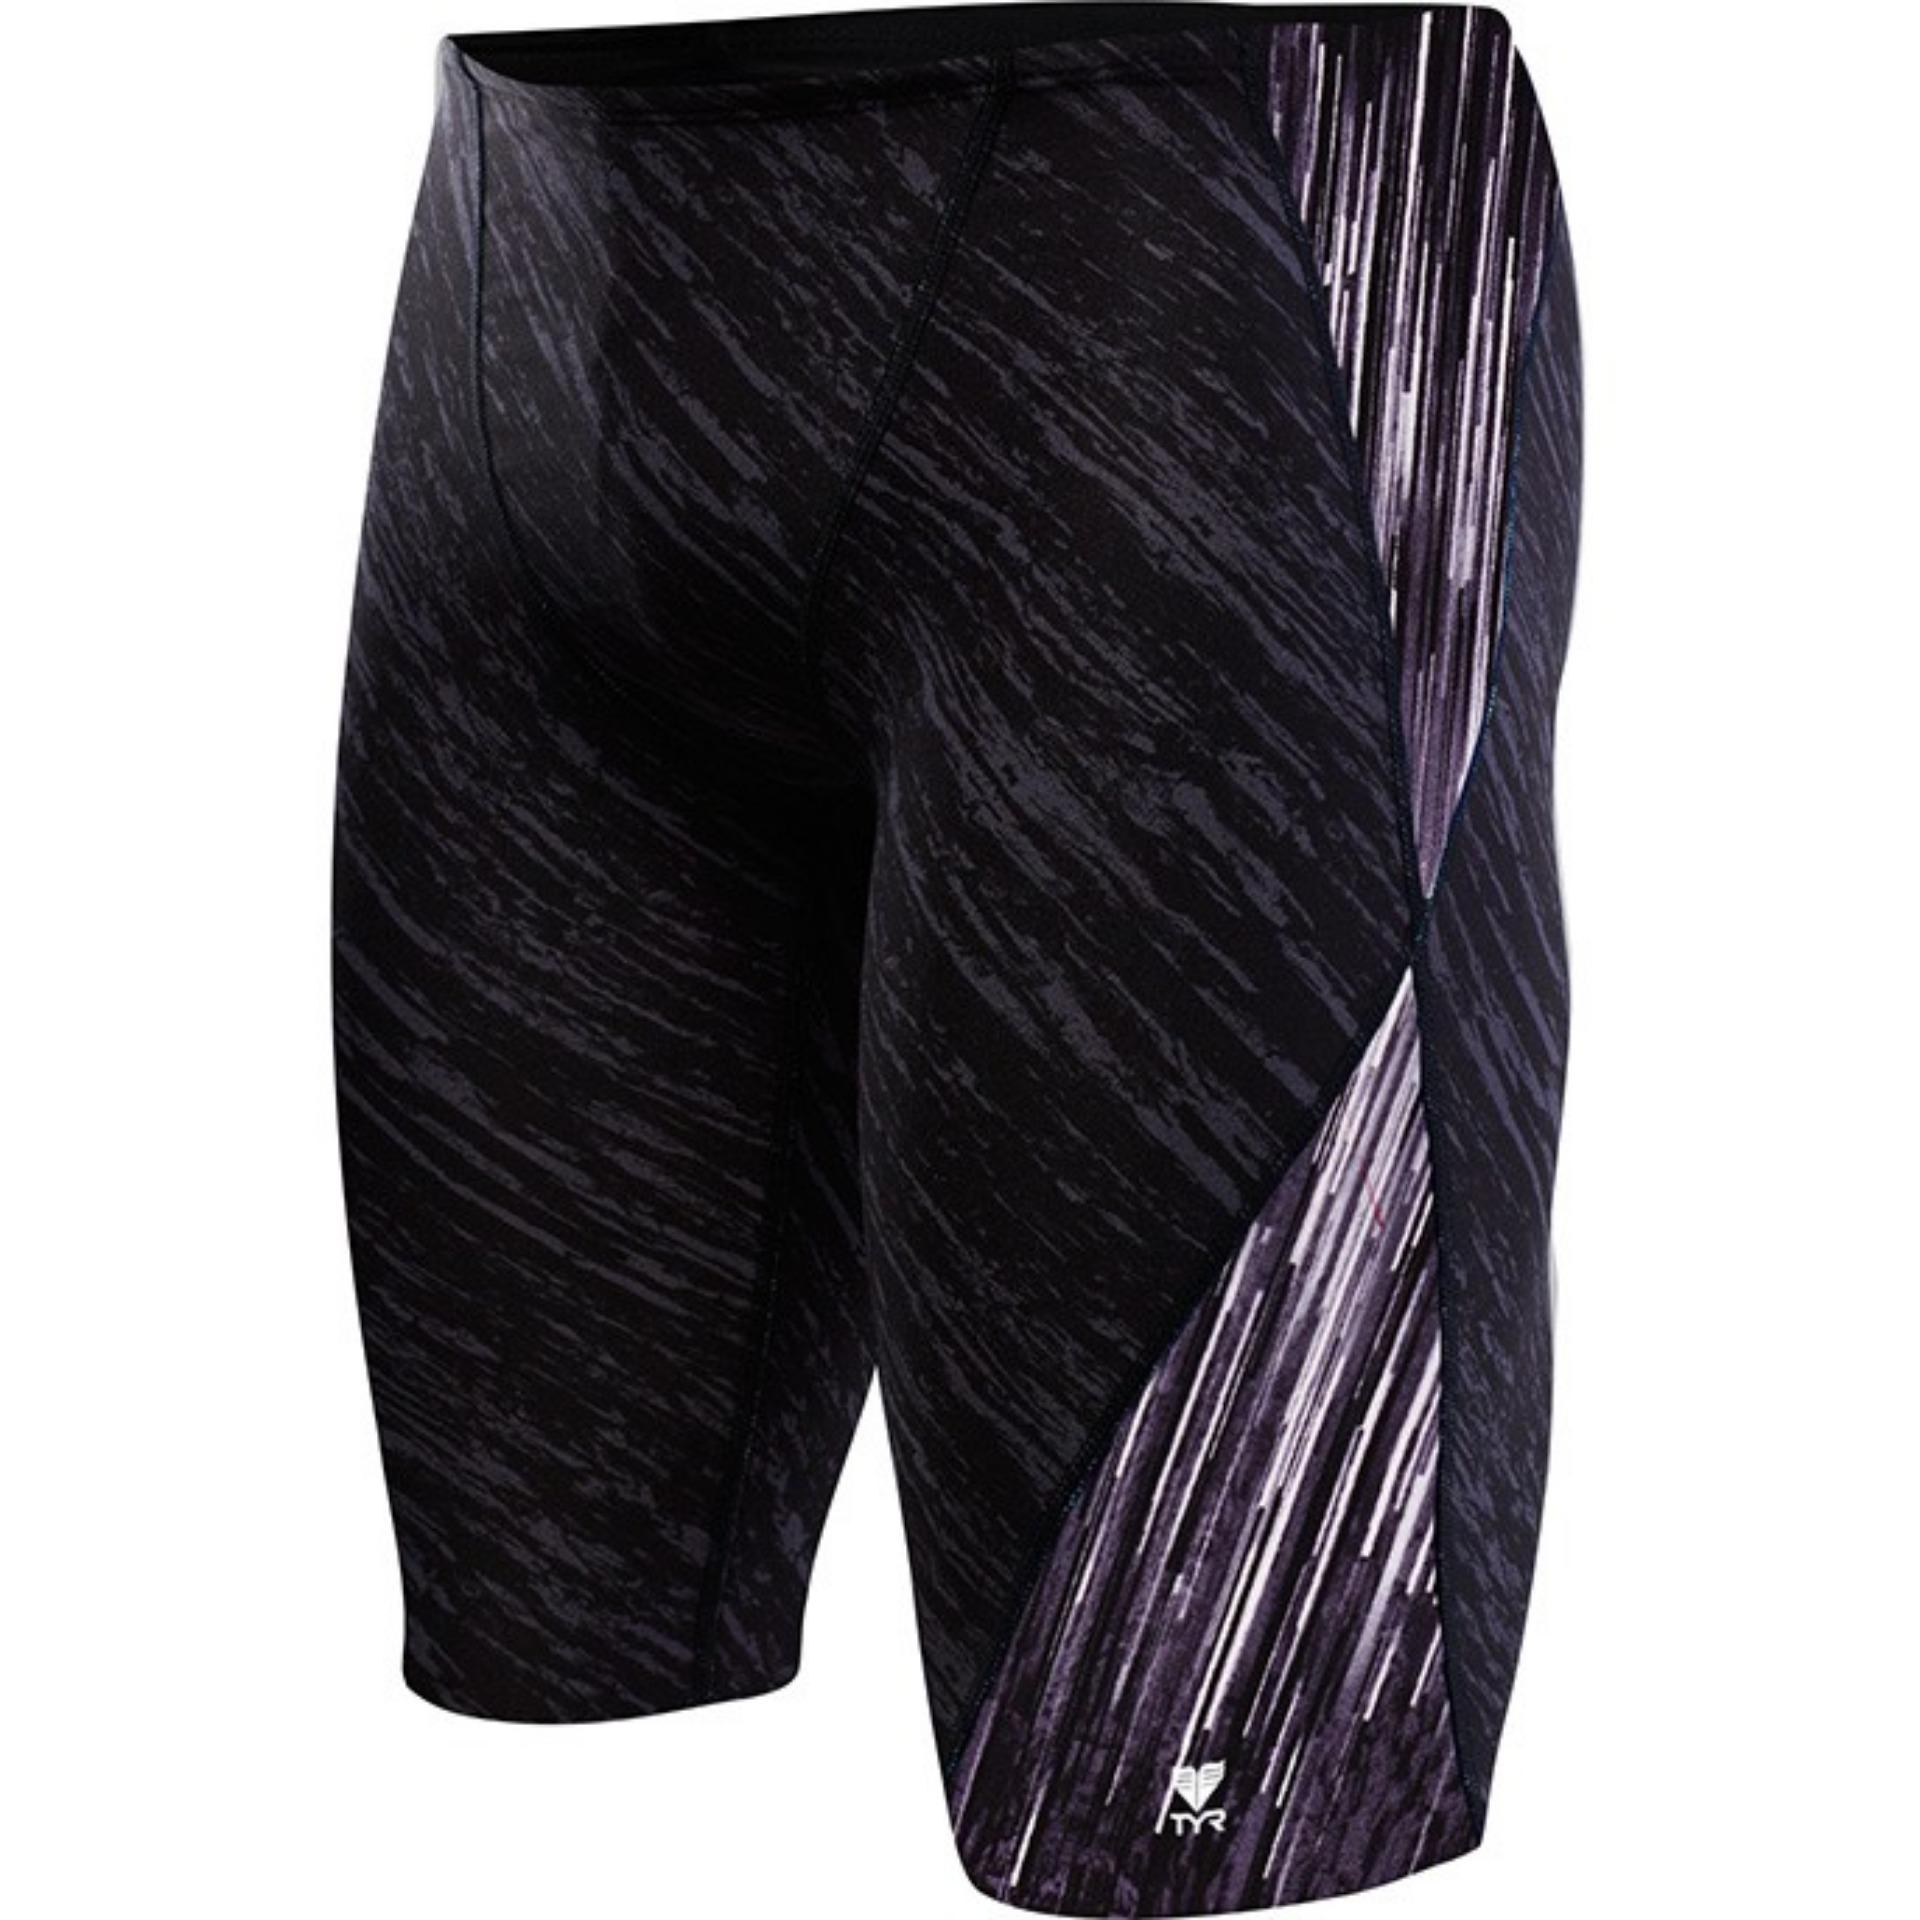 545608af16498 TYR Andromeda Jammer. TYR Andromeda Jammer. $69.90. (2). Singapore. OS Male  Breathable Swim Boxer Half Pants Swimming Trunks Hot ...